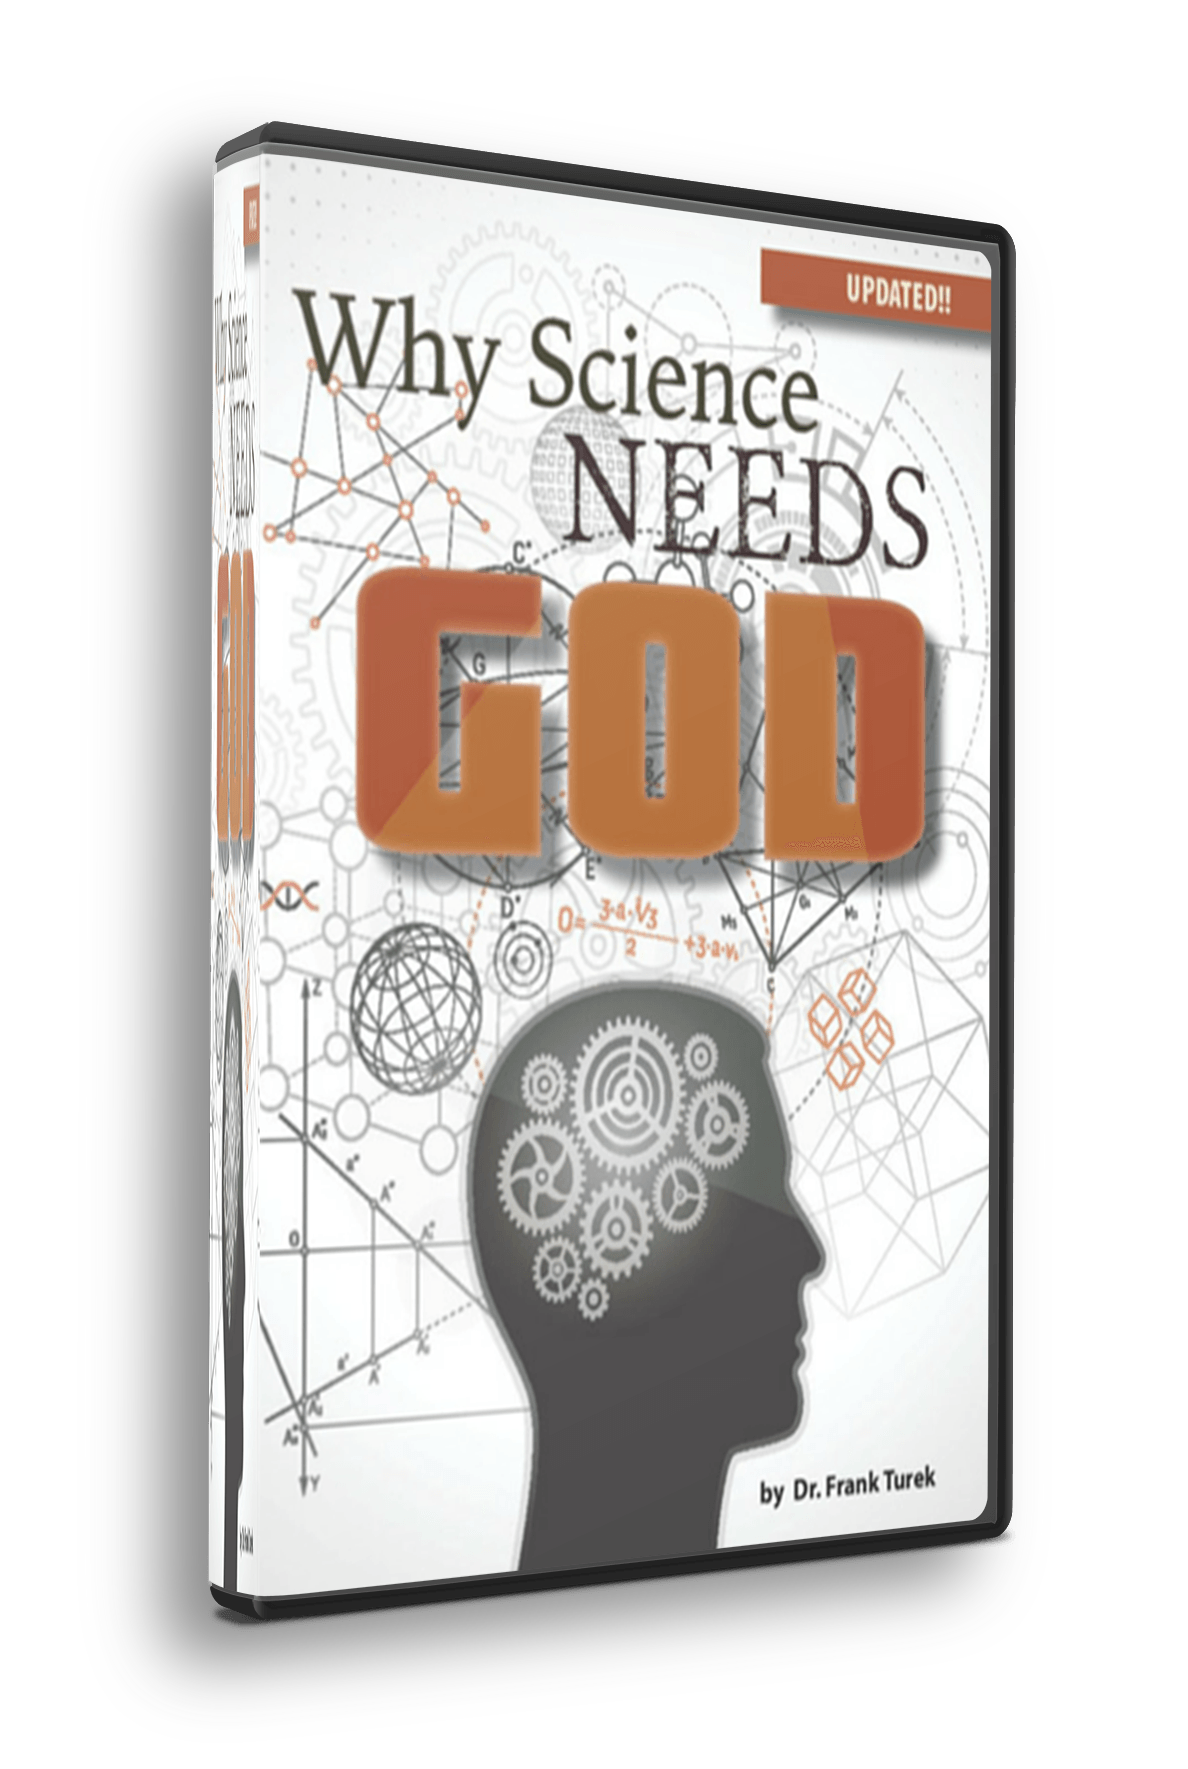 Why Science Needs God DVD SHADOW